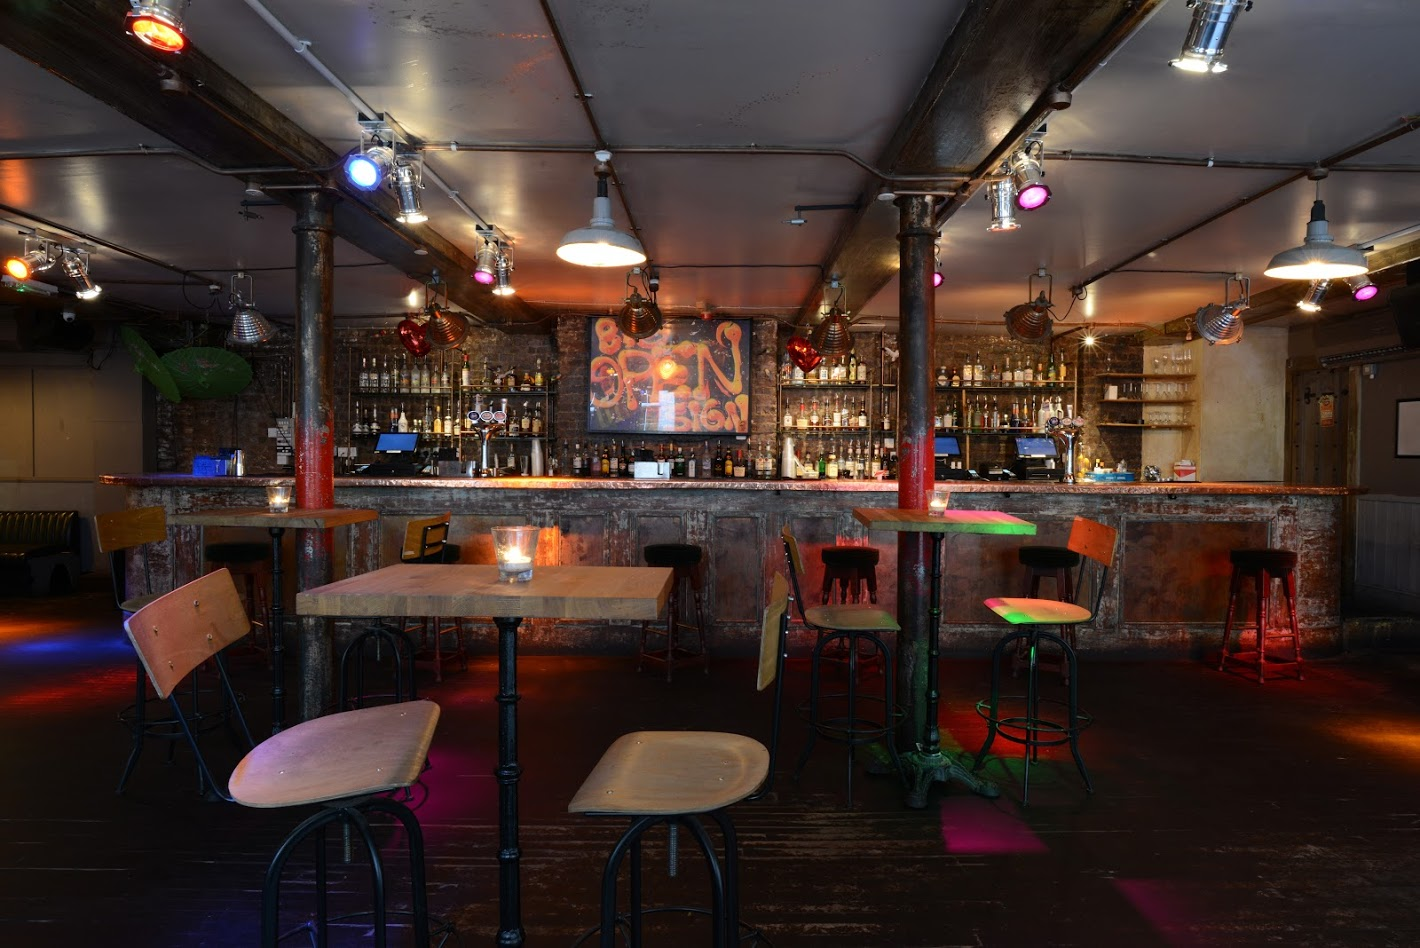 d779a937 Best DJ Bars Pubs London | London's Best DJ Bars Pubs | DesignMyNight